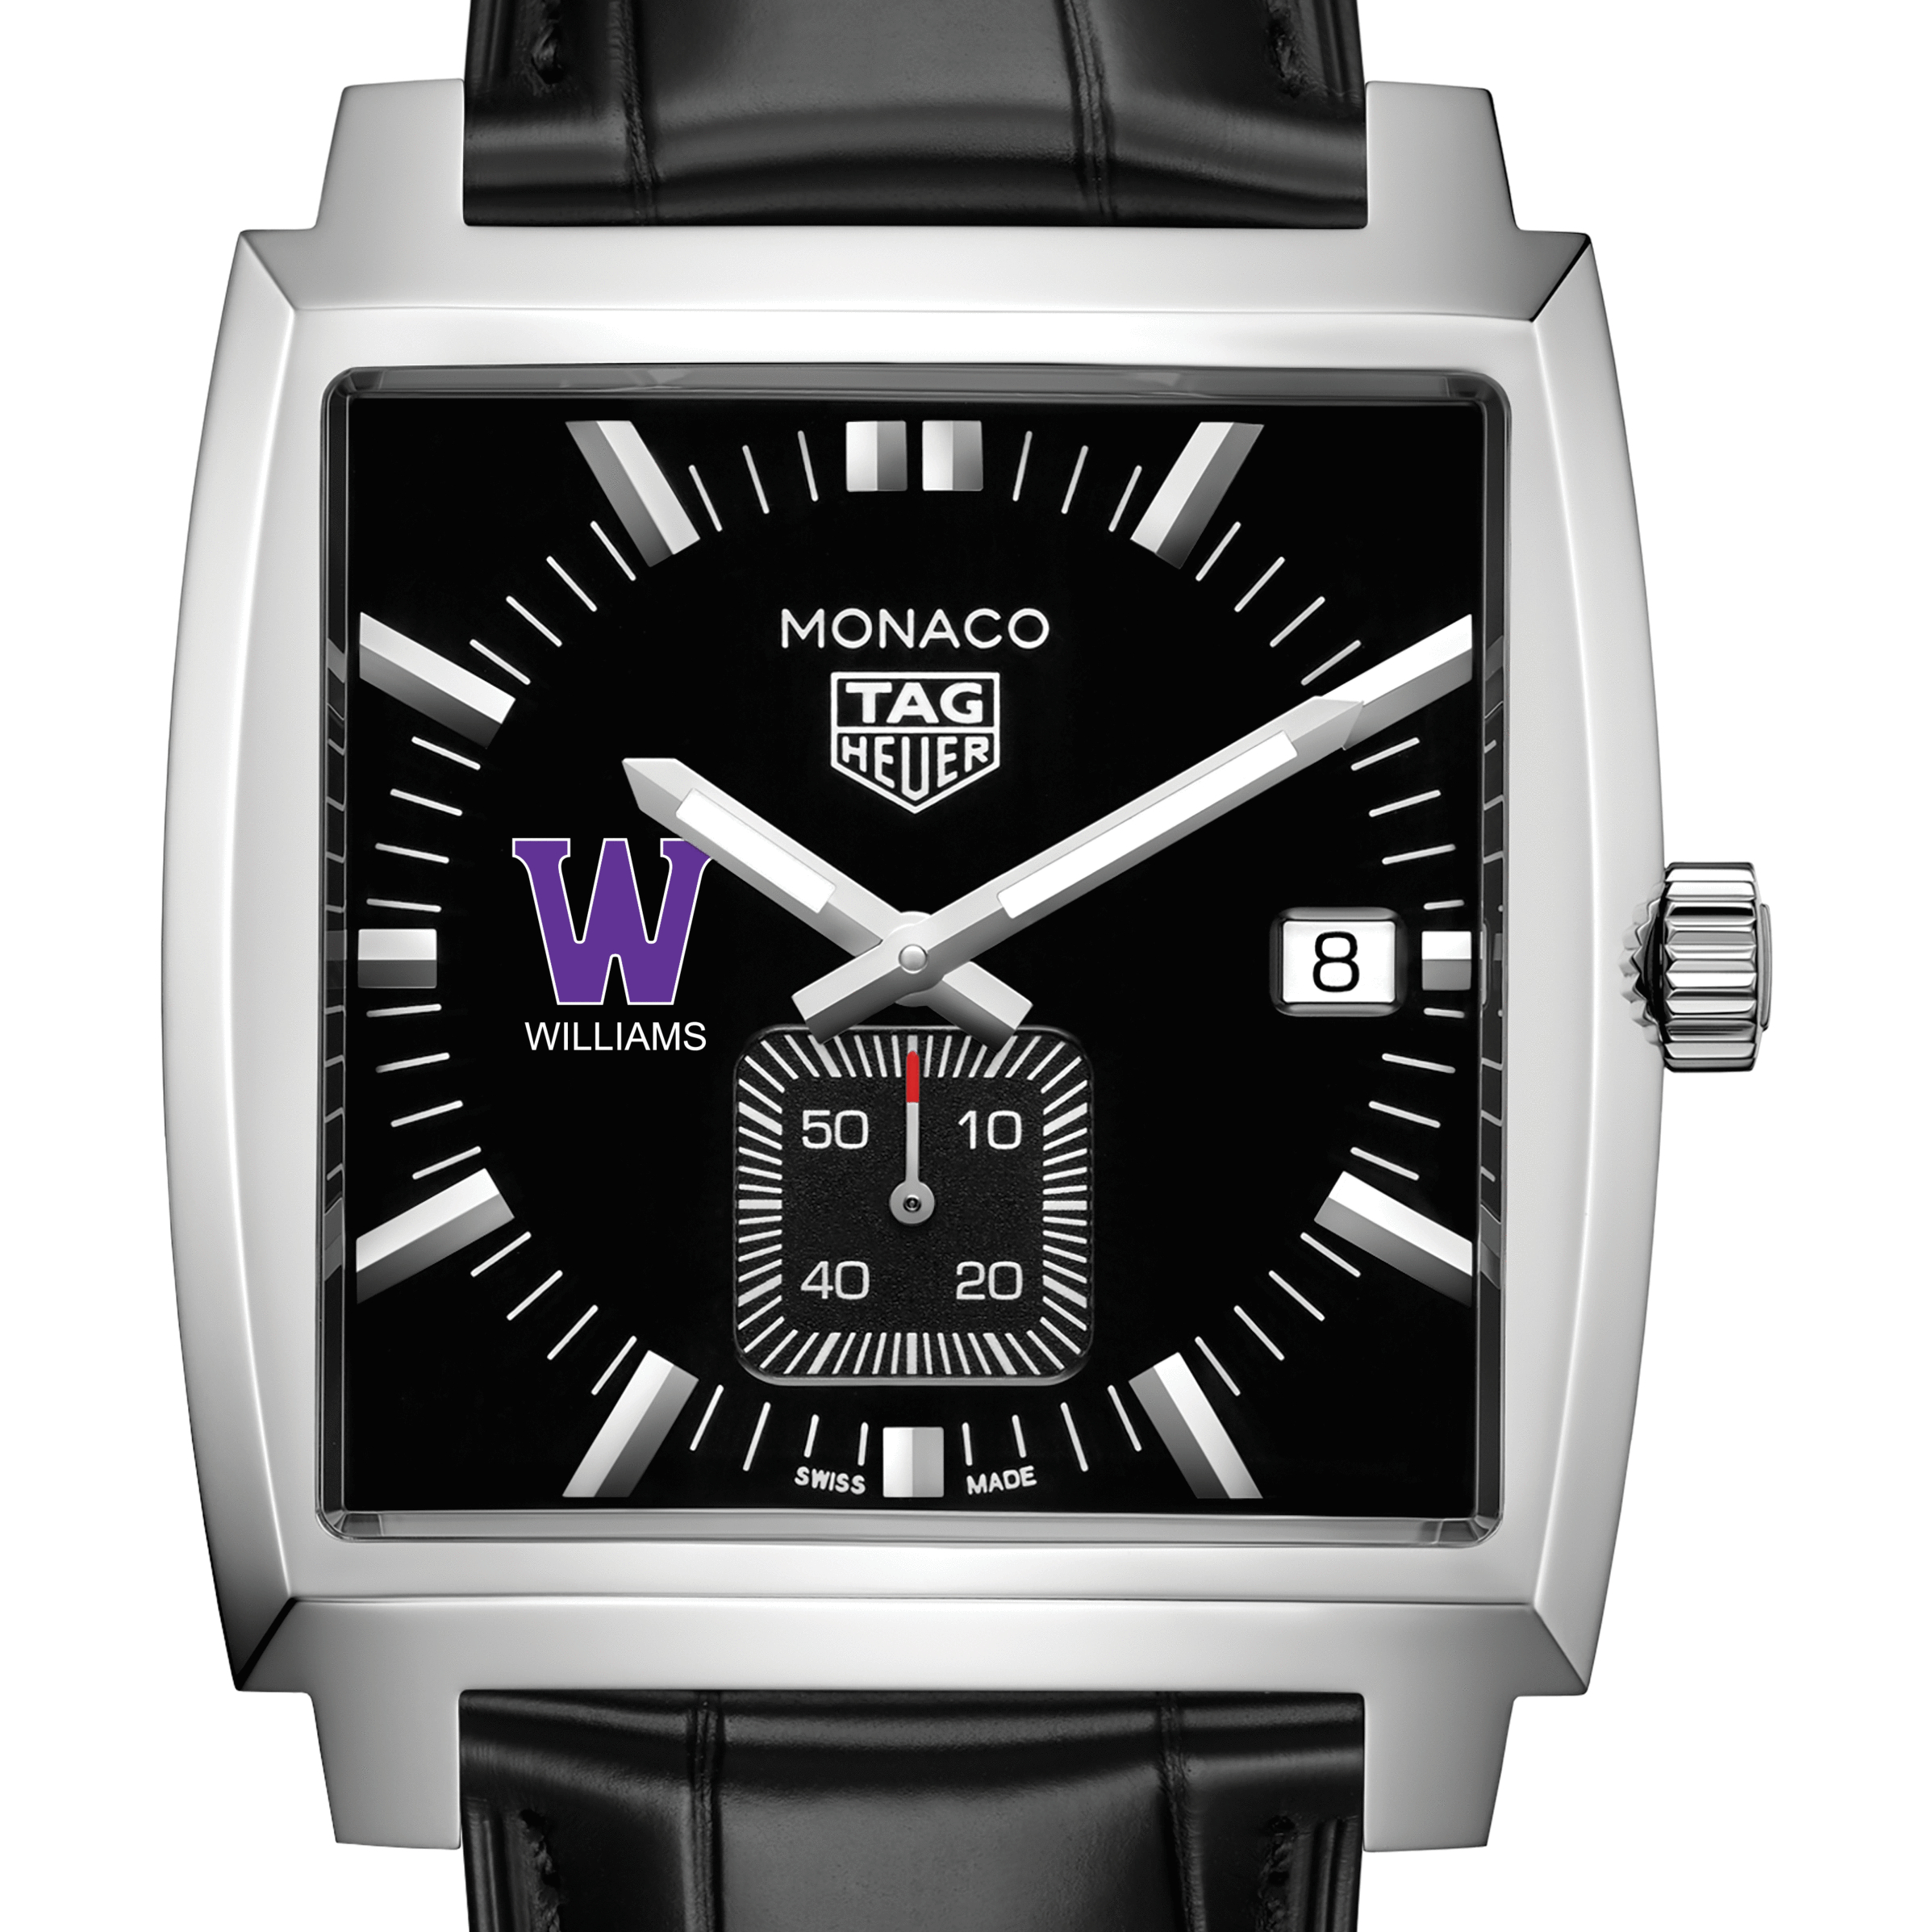 Williams College TAG Heuer Monaco with Quartz Movement for Men - Image 1